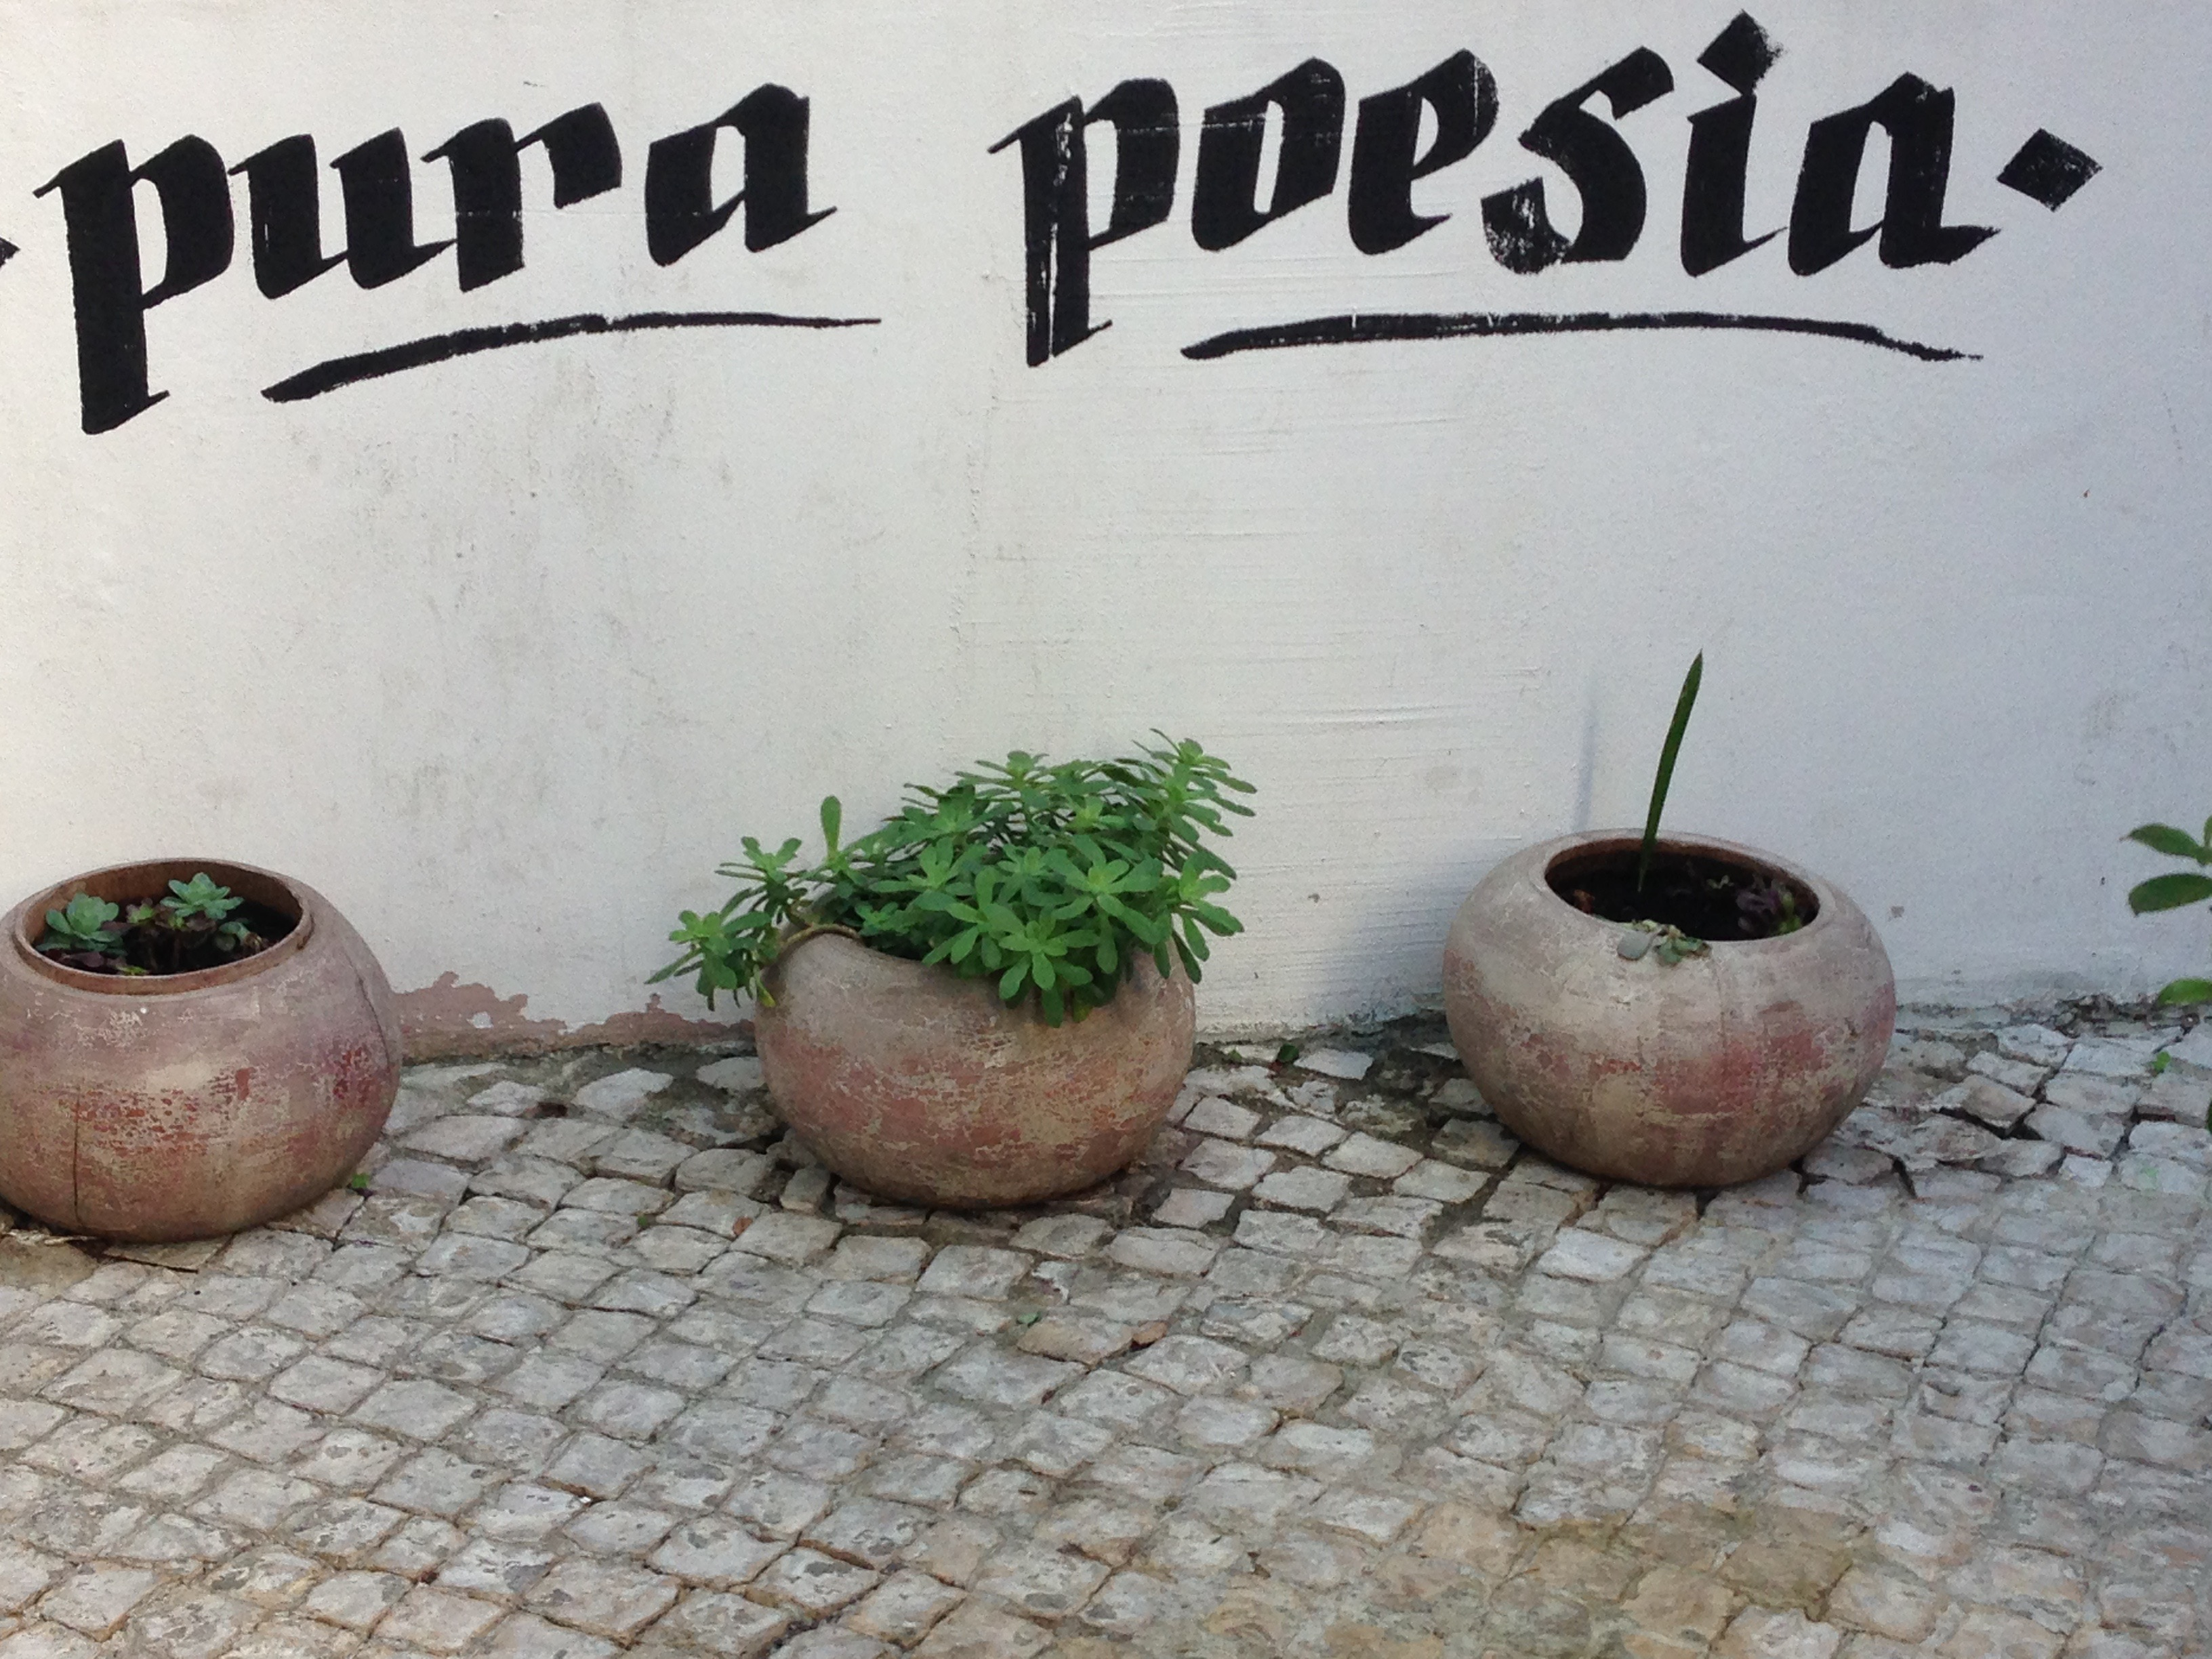 tl_files/themes/default/images/Susanne/pura poesia.jpg